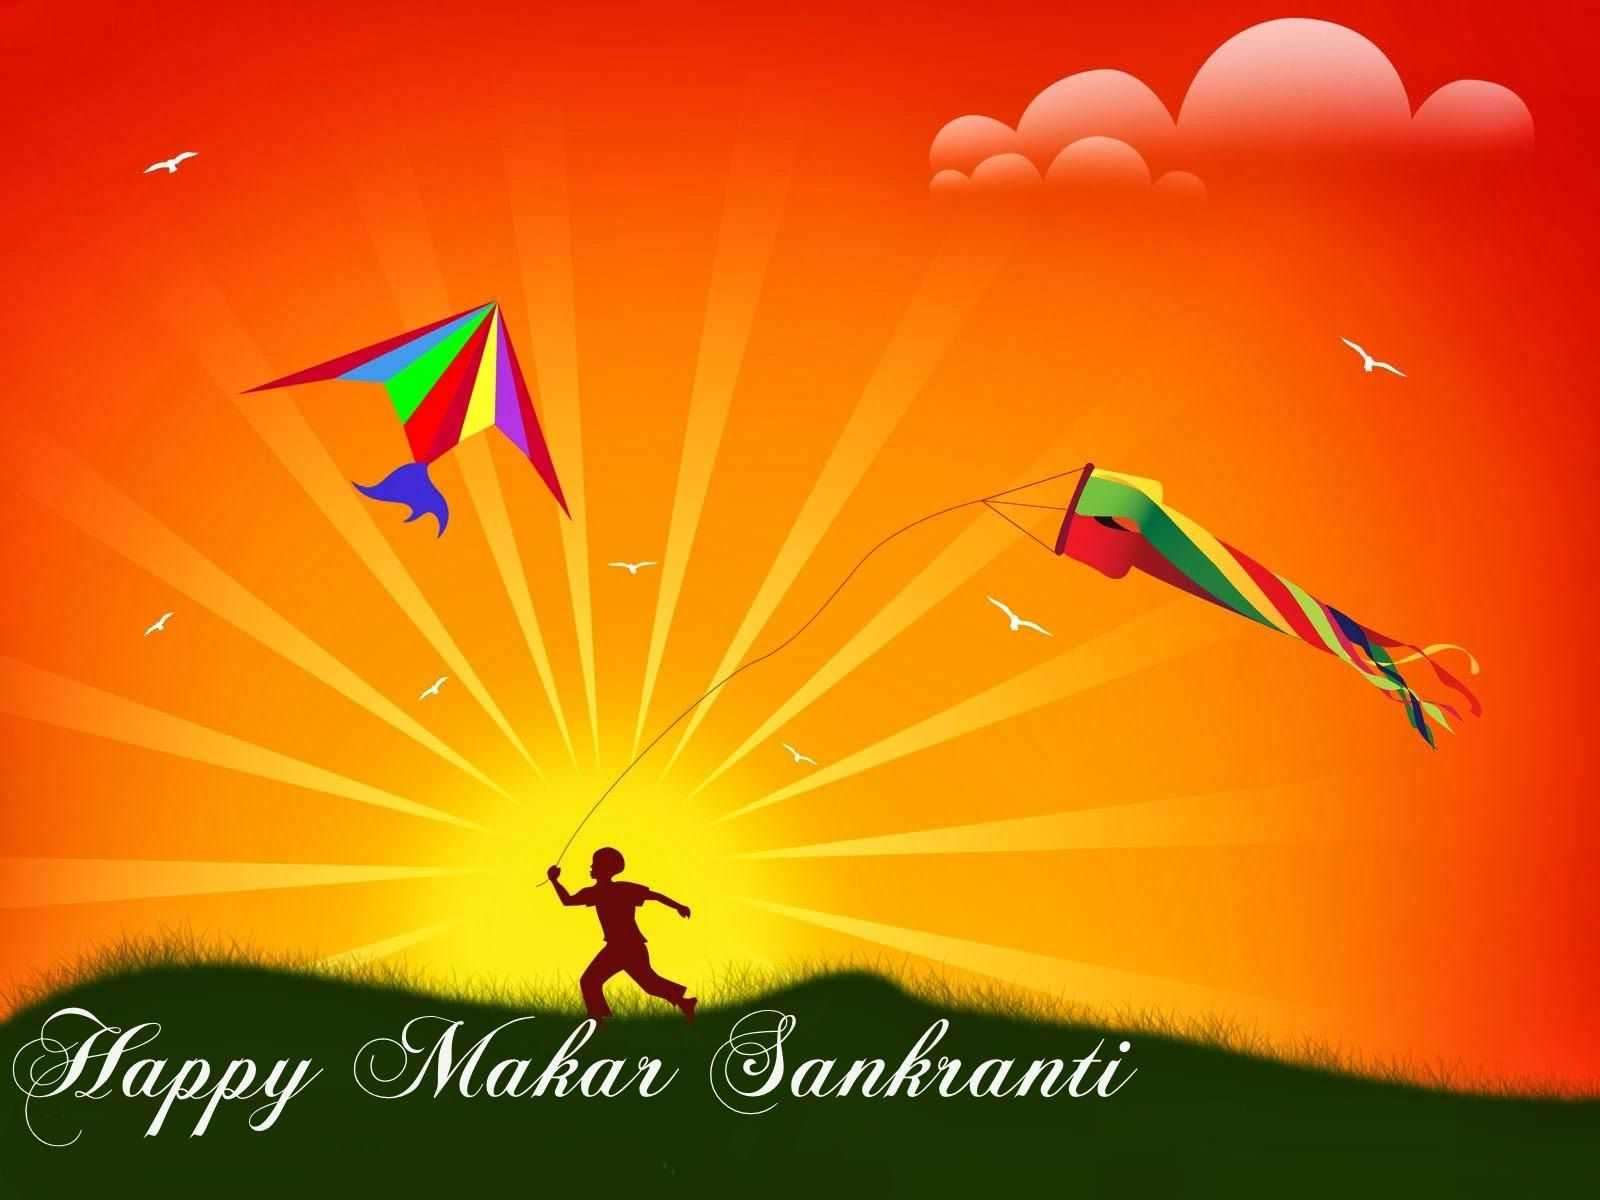 makar sankranti images with quotes